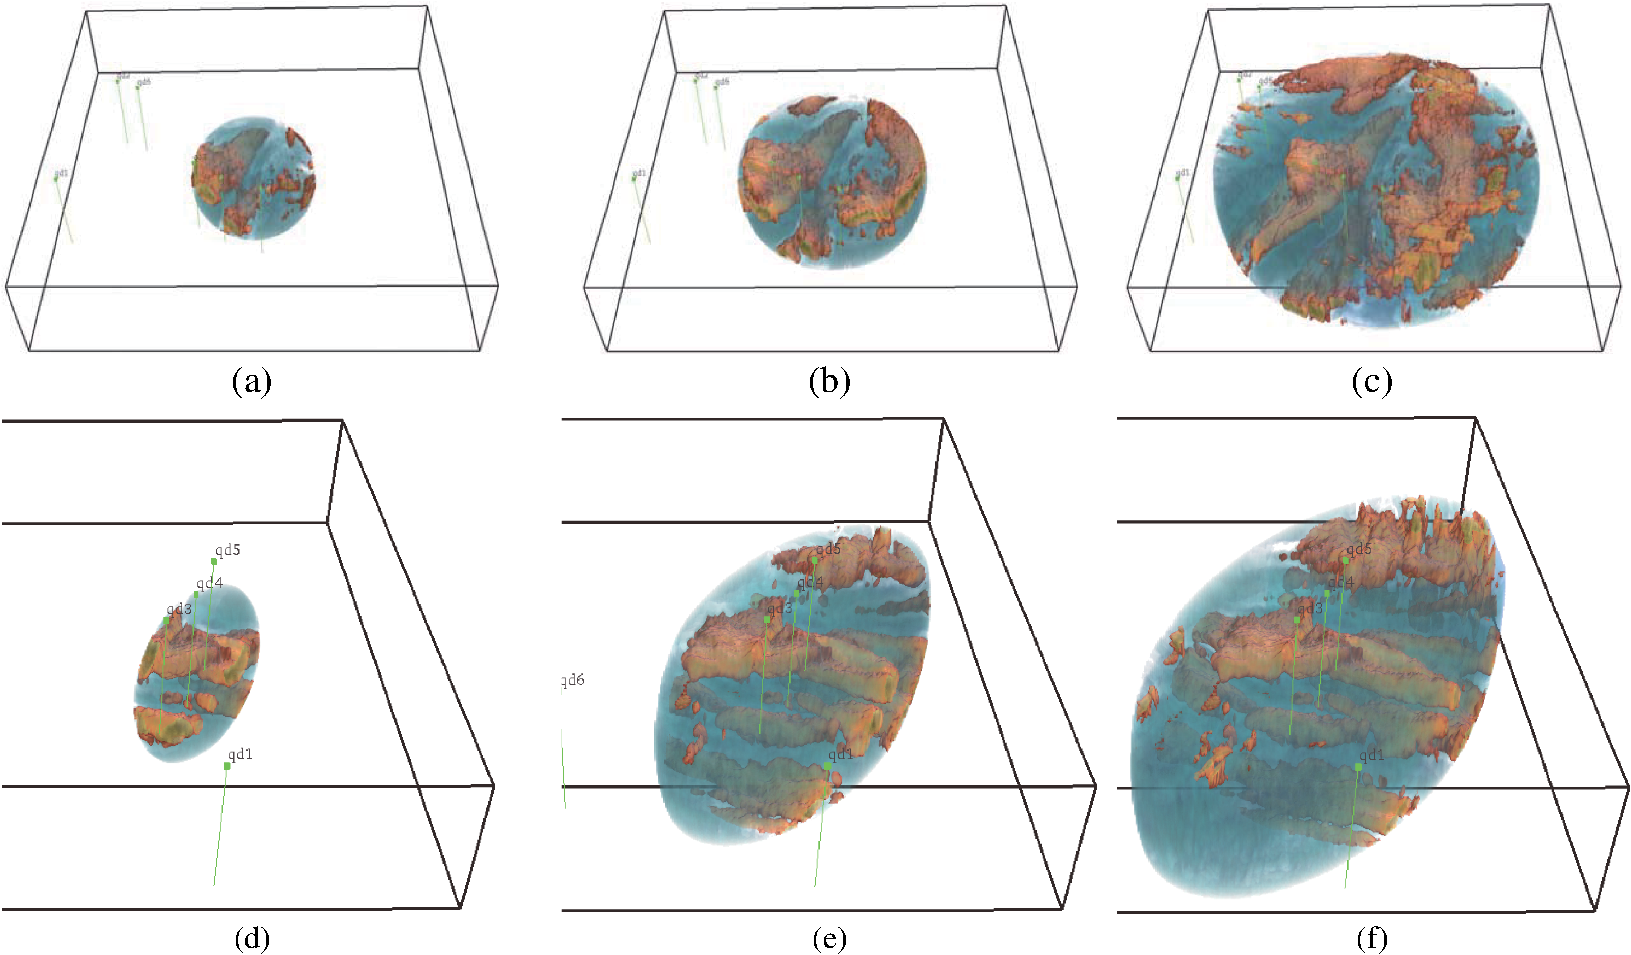 Interactive geological visualization based on quadratic-surface